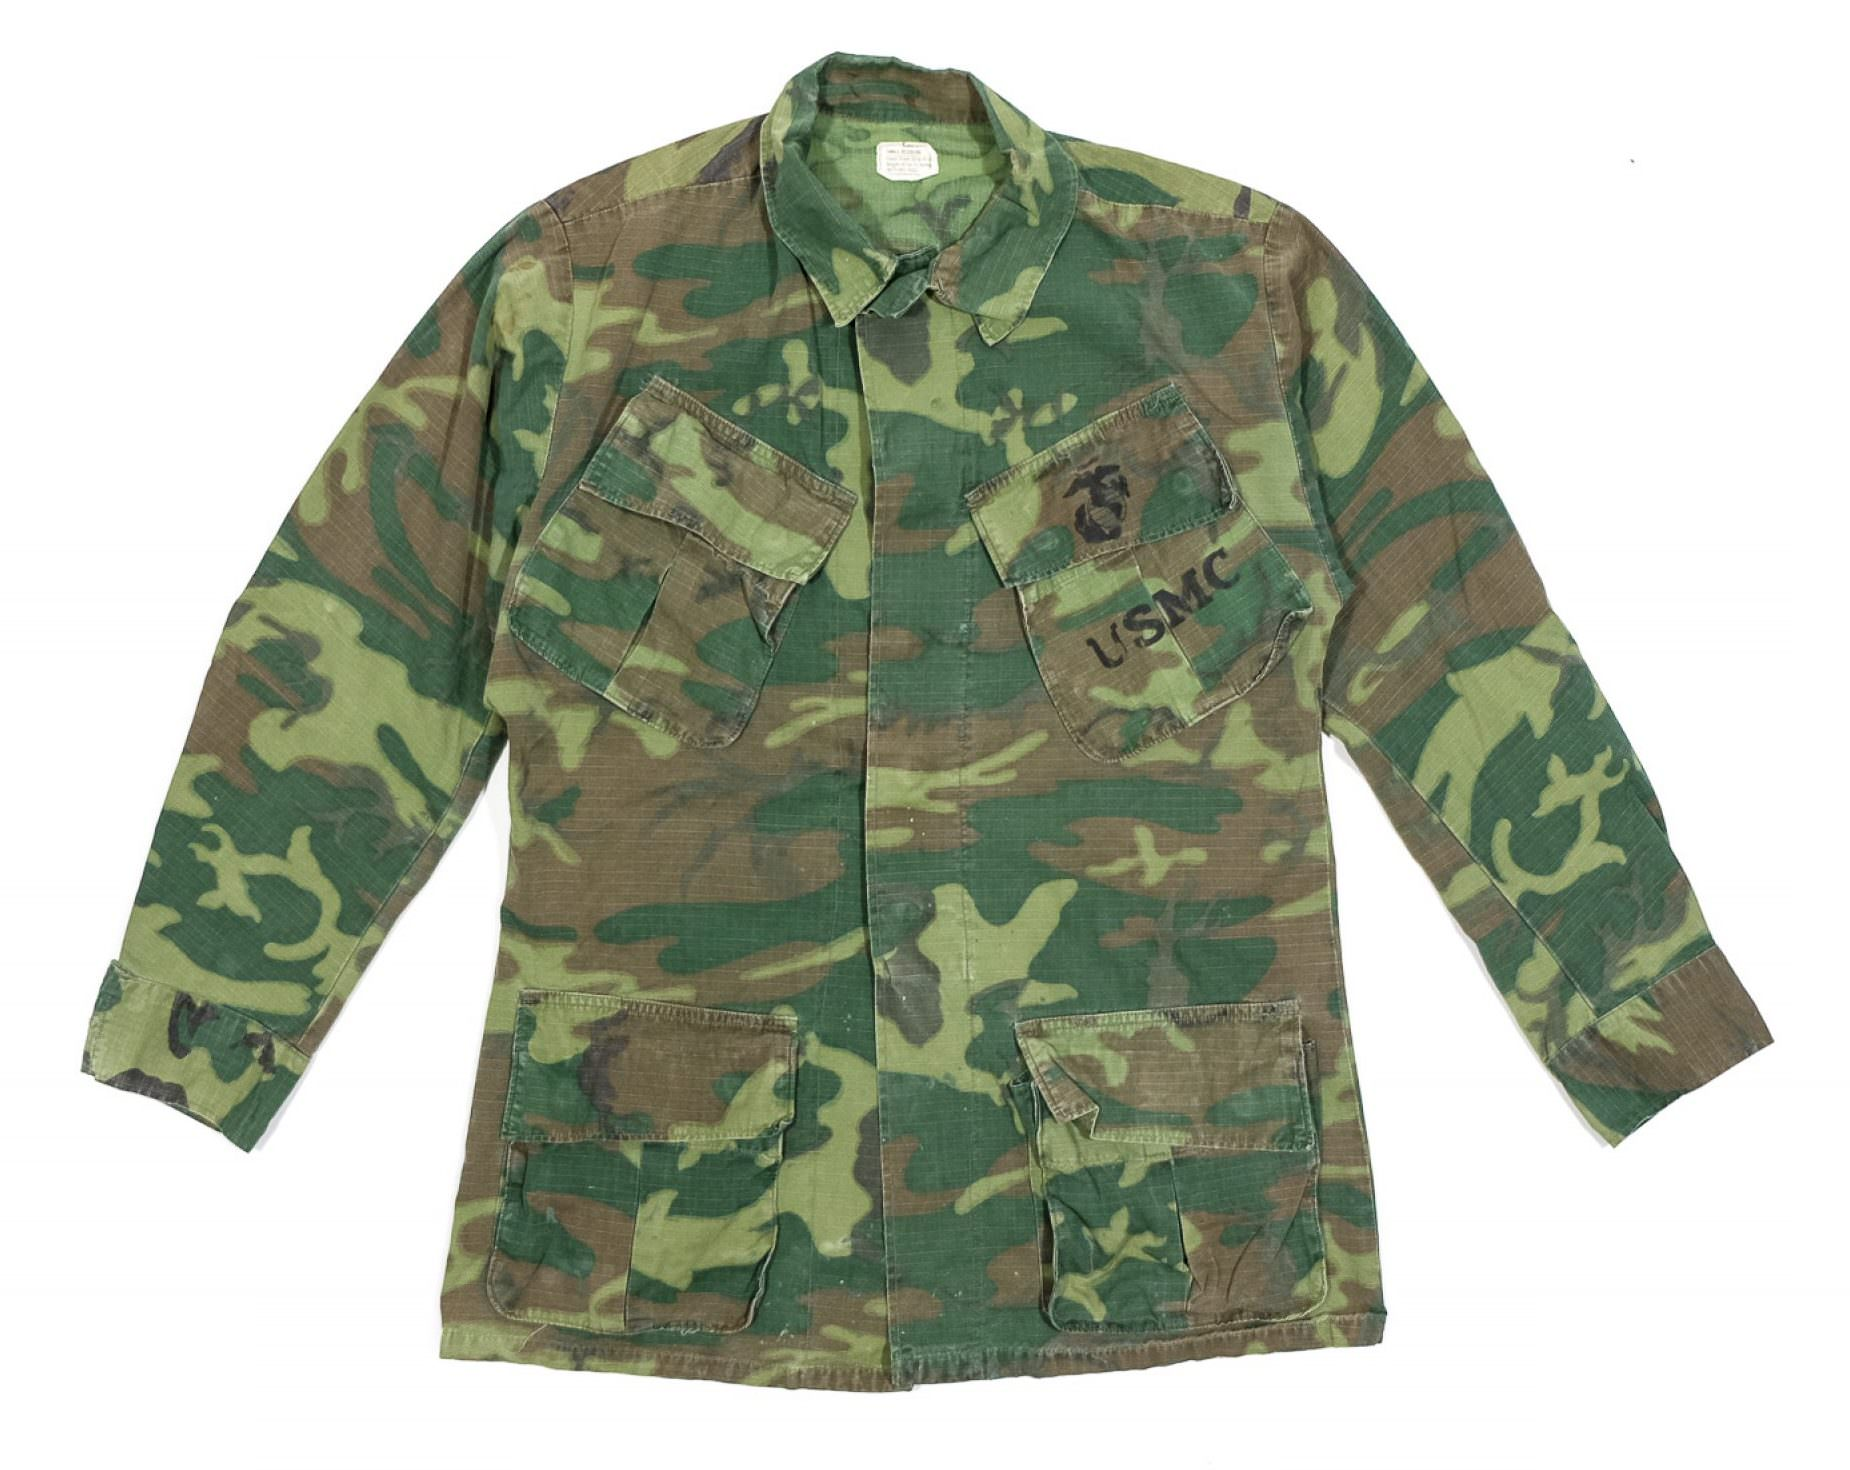 jungle jacket Type 3 vert usmc